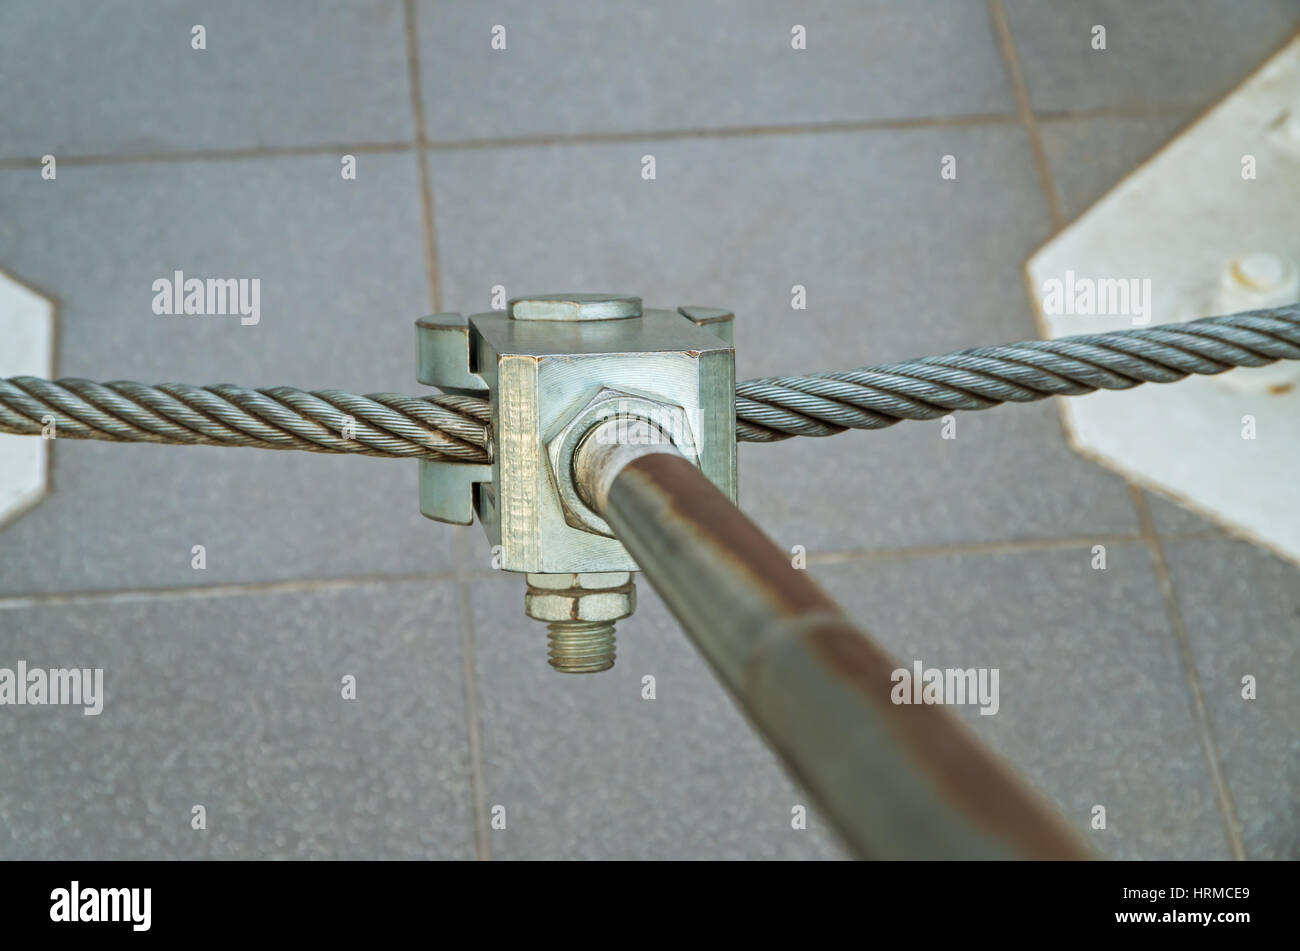 Metal mount consisting of bolts and cables to secure the radio transmitting antennas - Stock Image